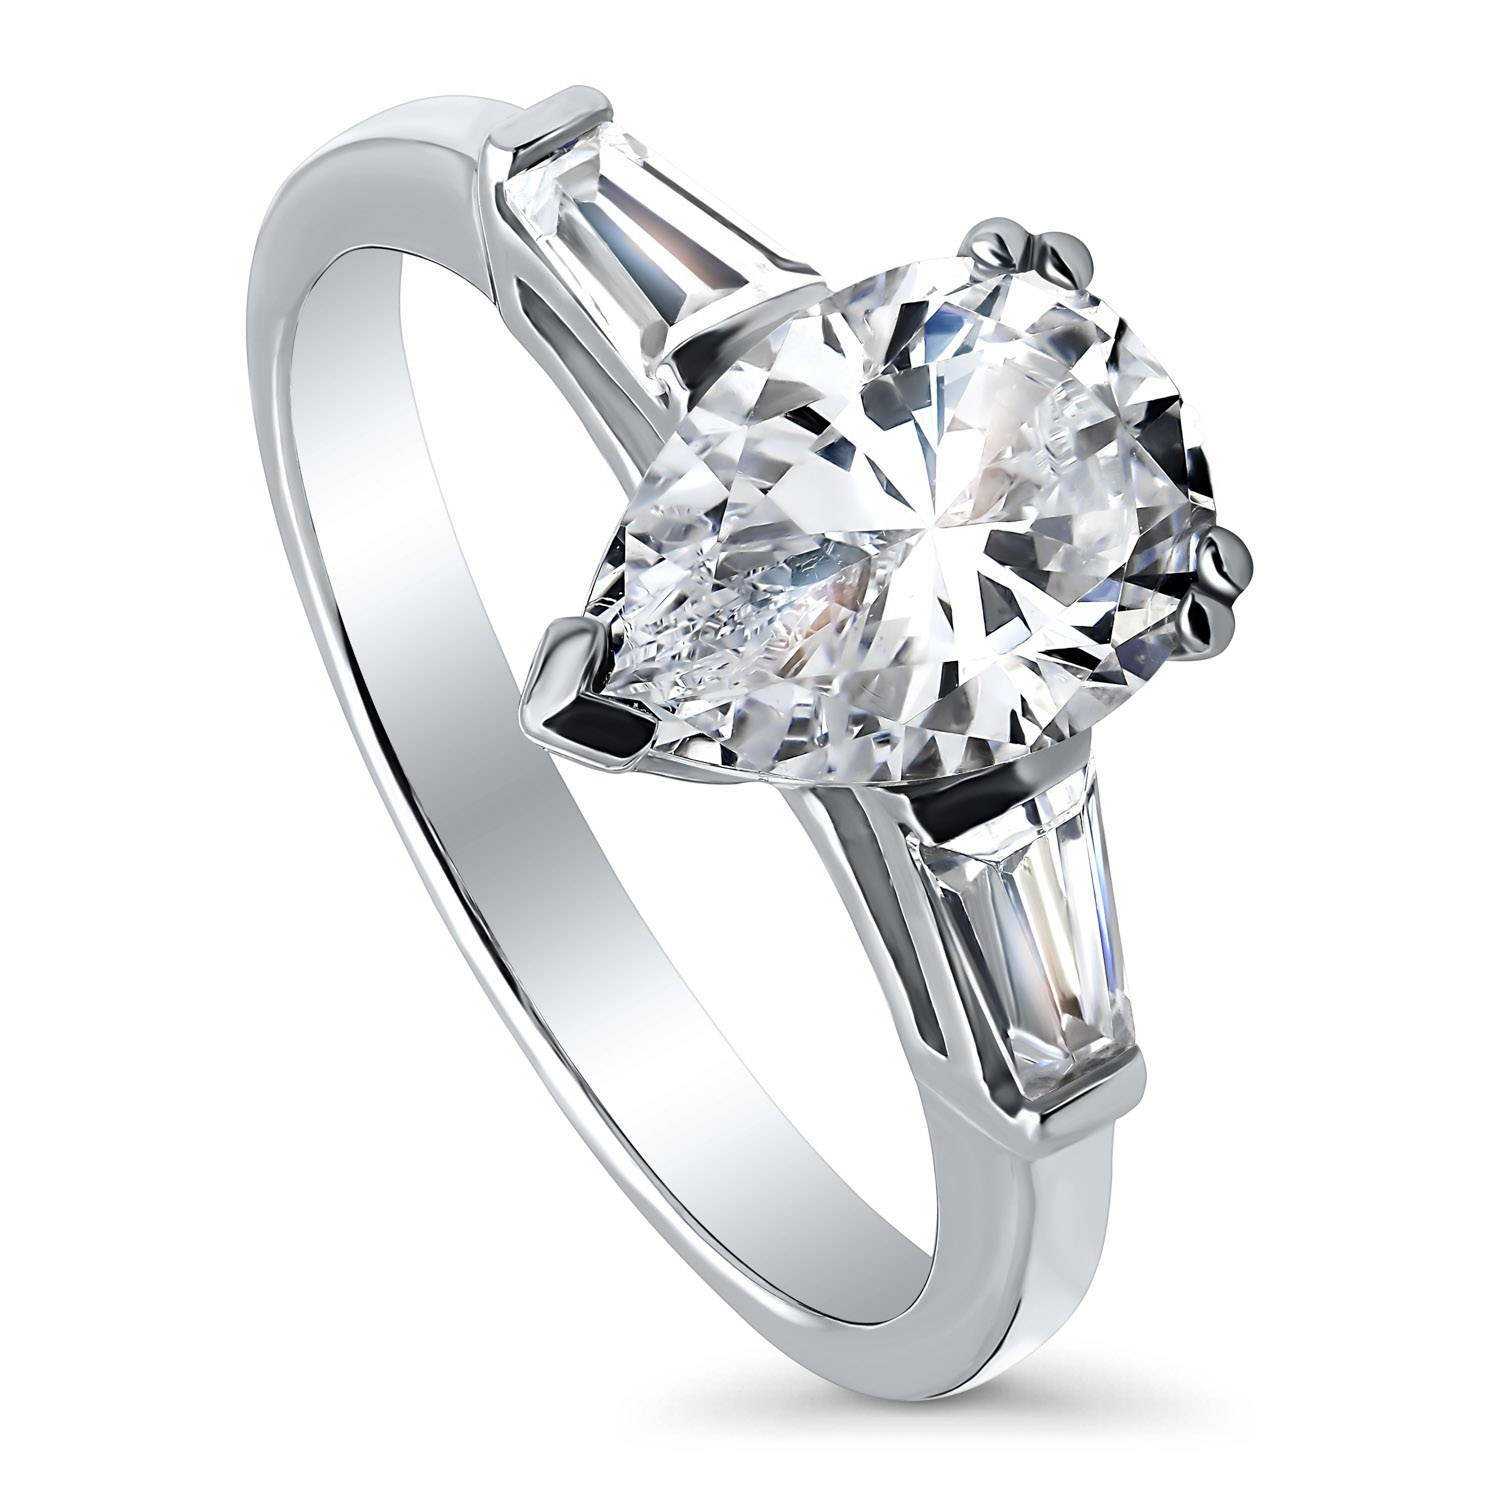 BERRICLE Rhodium Plated Sterling Silver Pear Cut Cubic Zirconia CZ 3-Stone Engagement Ring Size 6.5